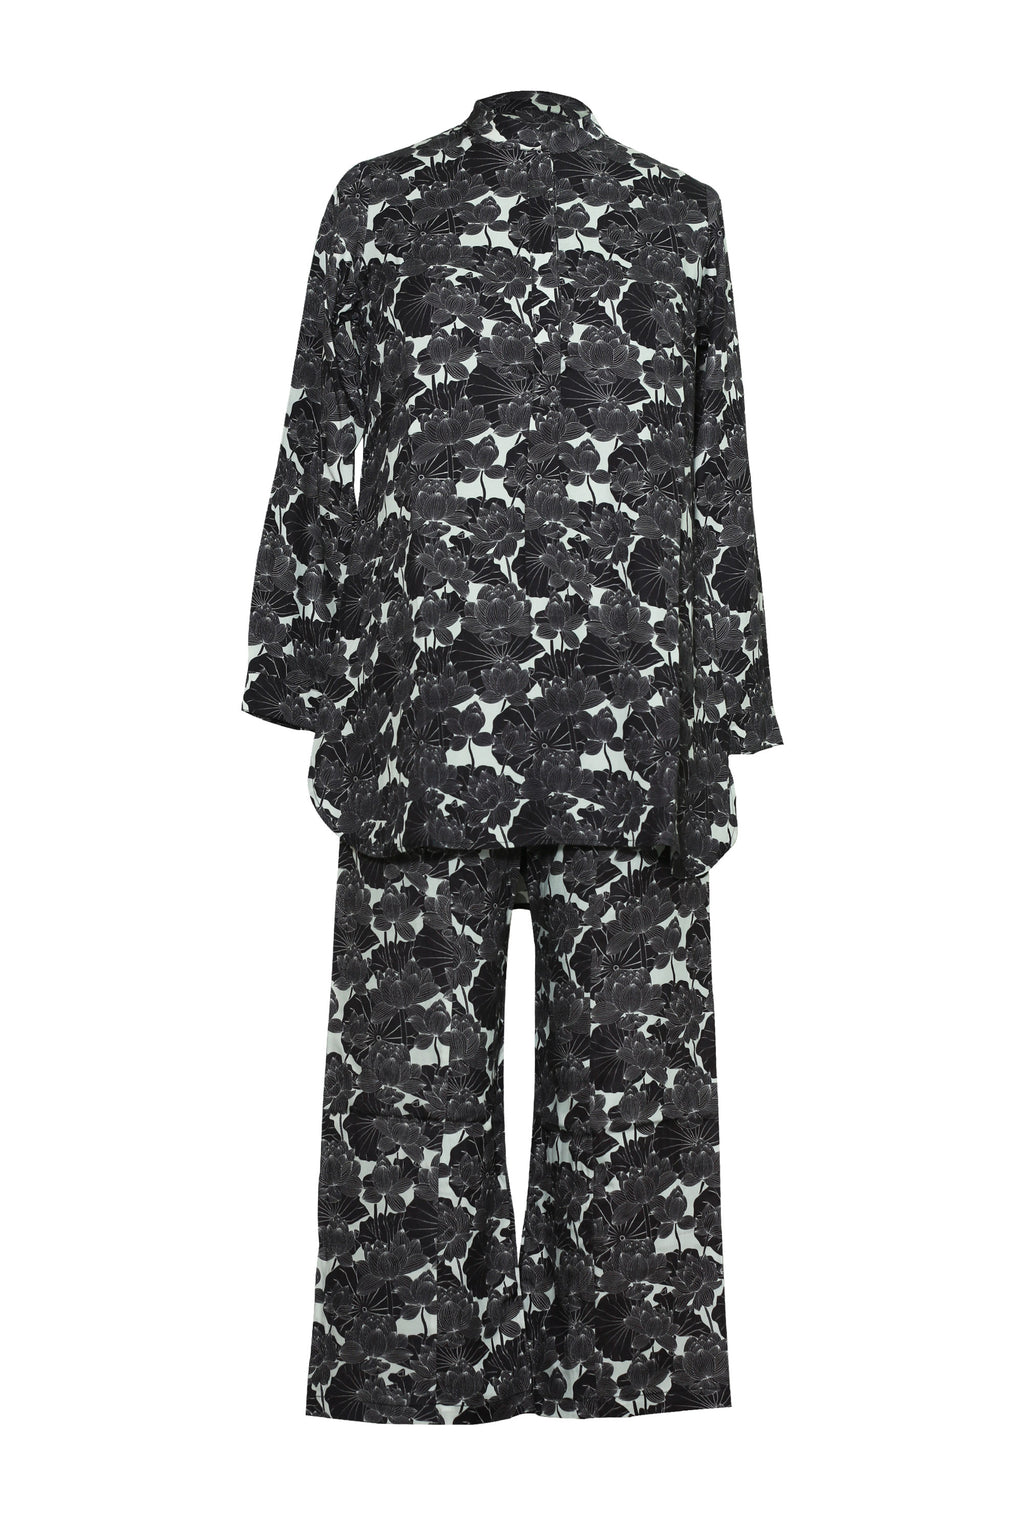 Wear We Met Floral Shirt N Pajama Set-91A742 - Apsara Silks